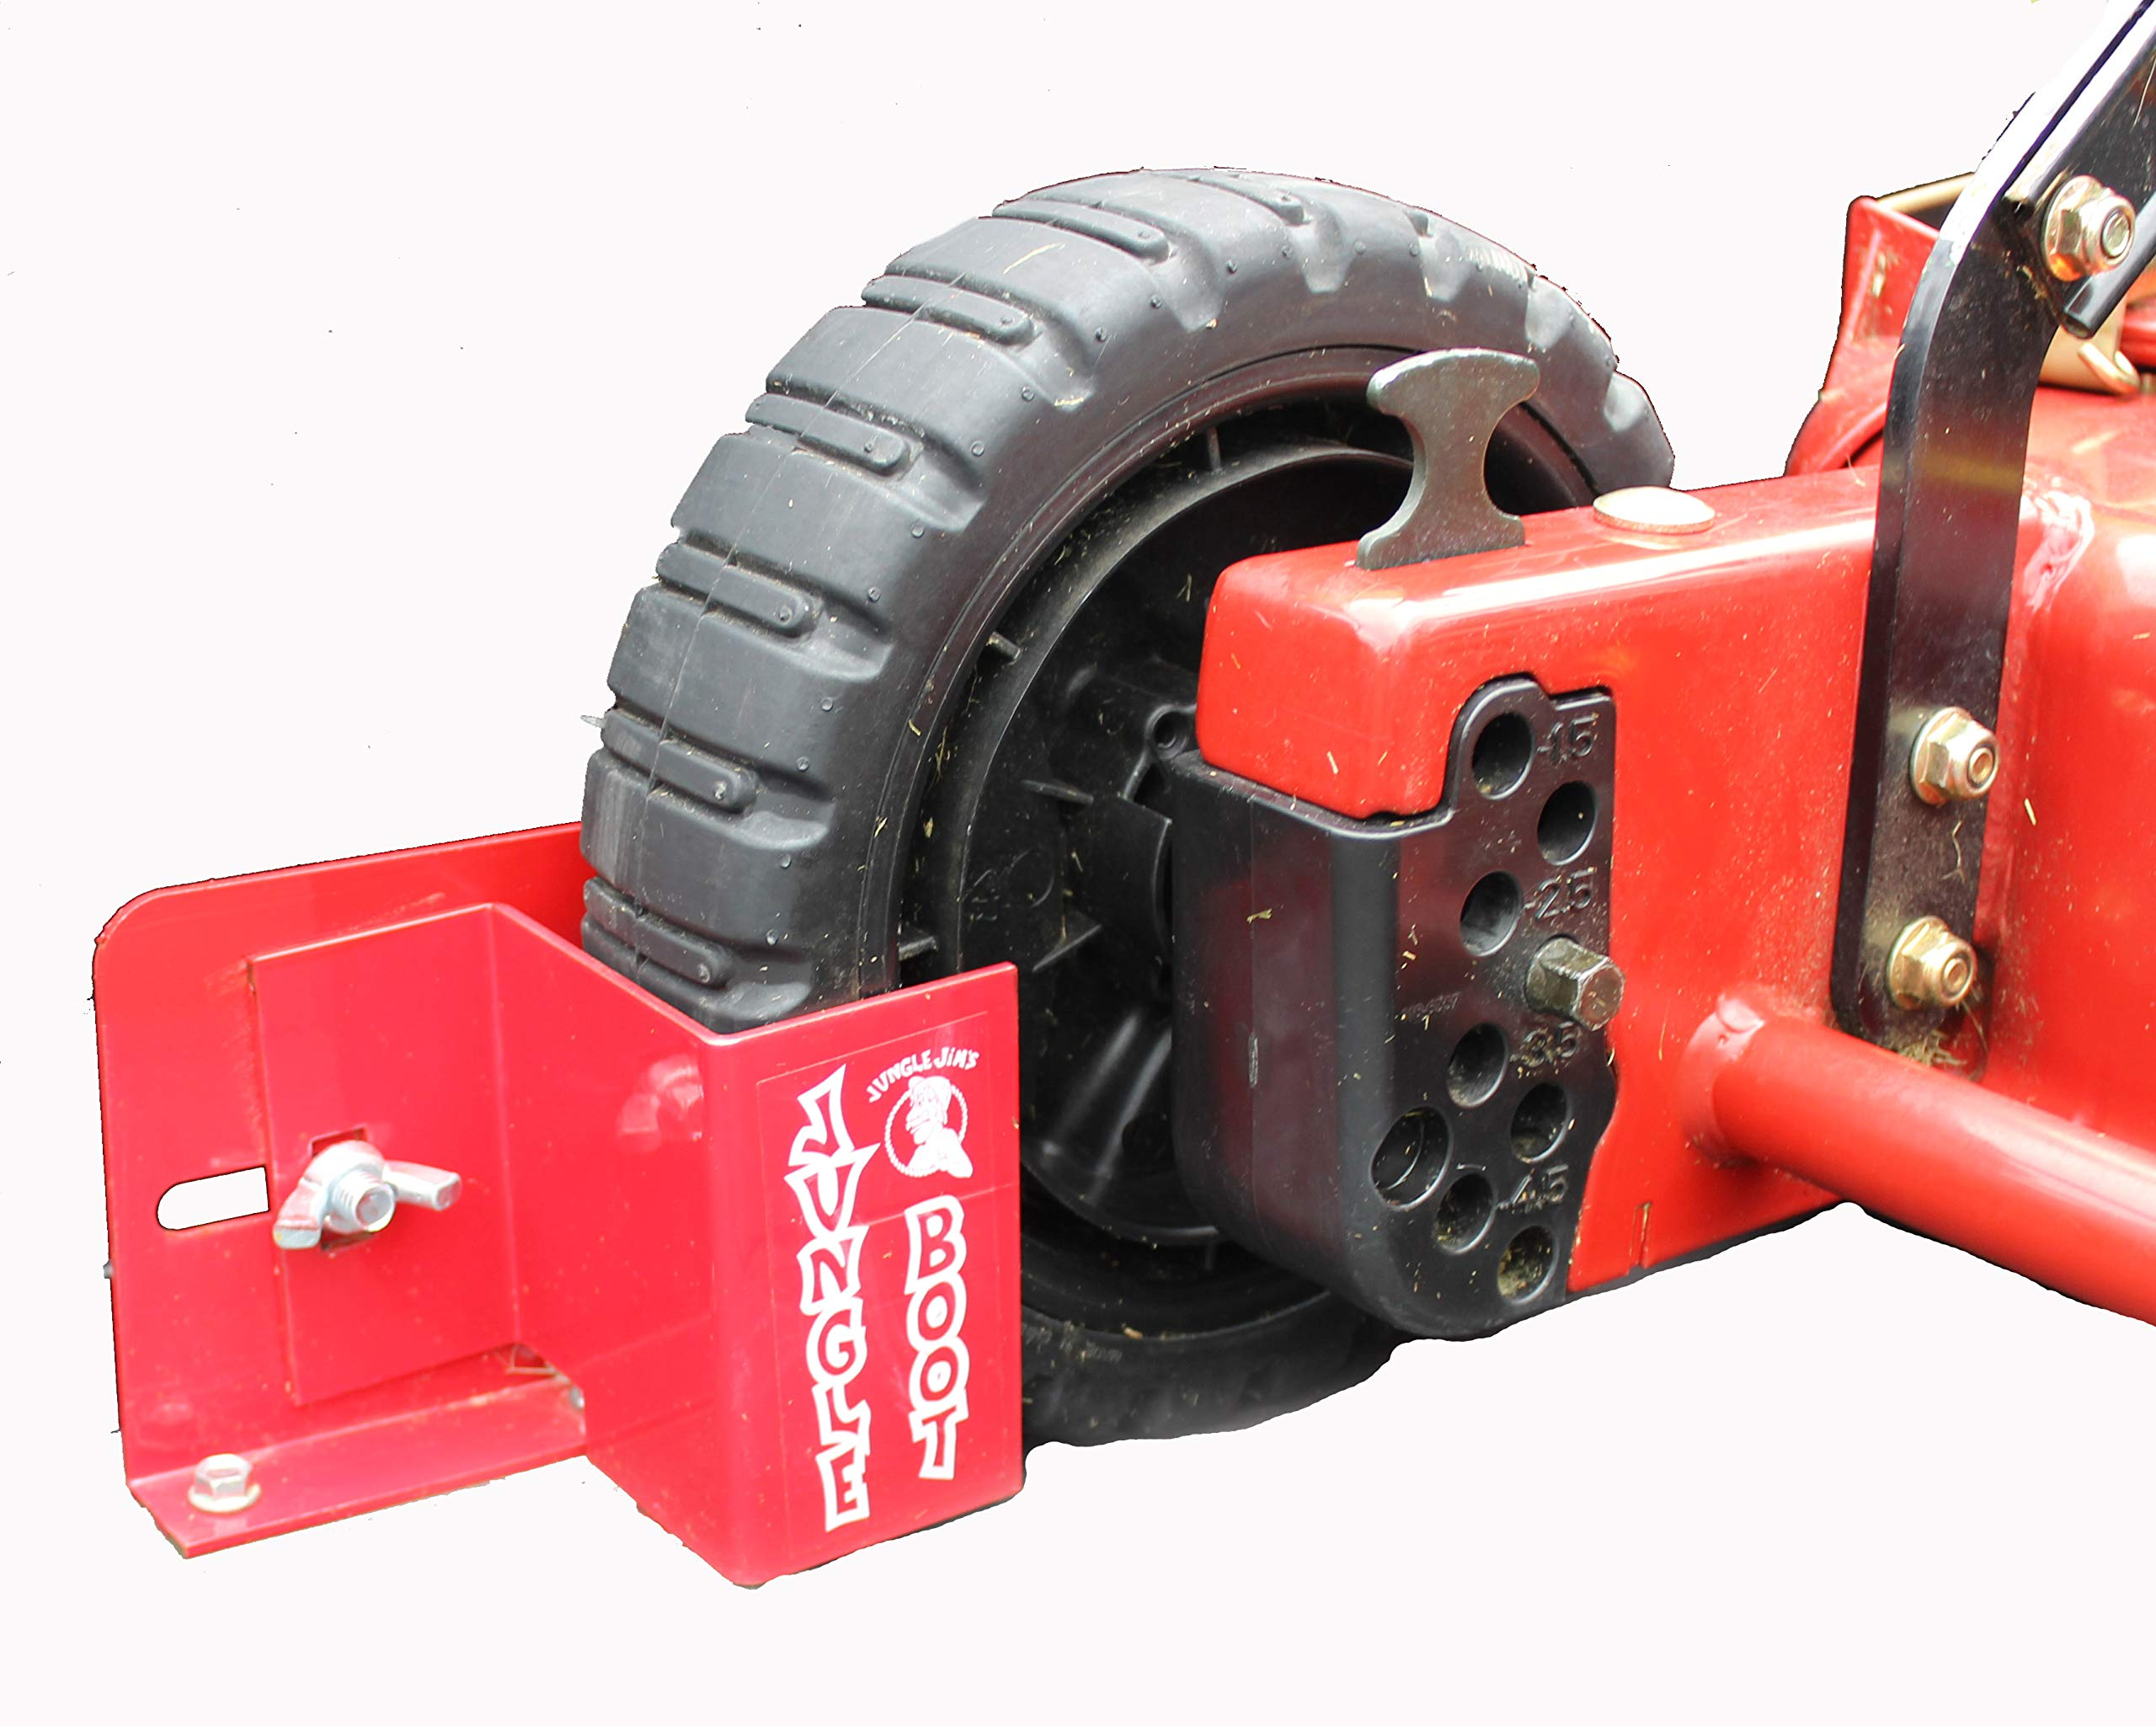 Jungle Boot Small, to Secure Push mowers on Your Open or Enclosed Trailers by Jungle Jims